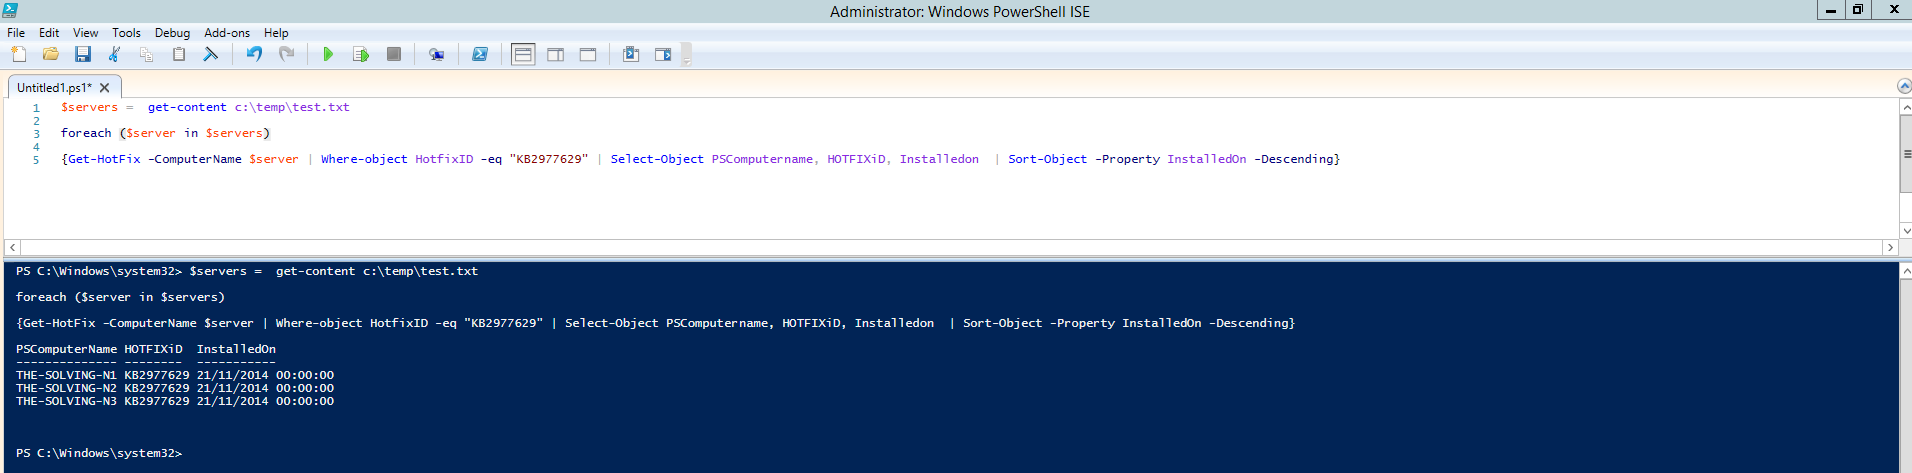 A Guide to PowerShell - part 3 | The Solving